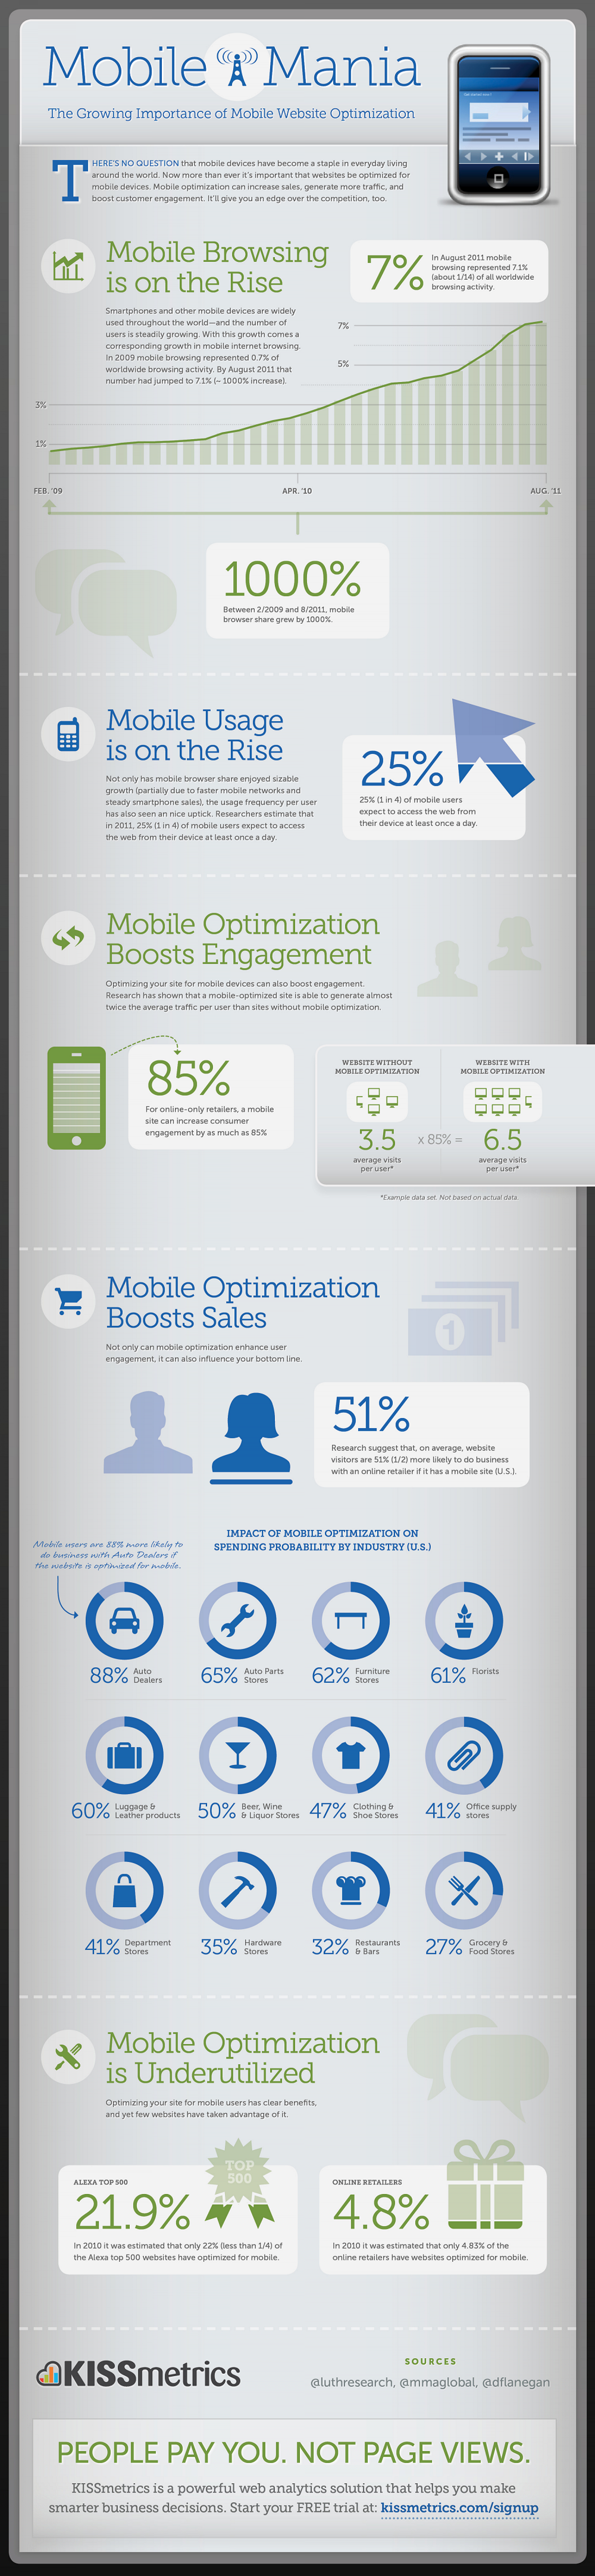 Mobile Mania - The Growing Importance of Mobile Website Optimization Infographic